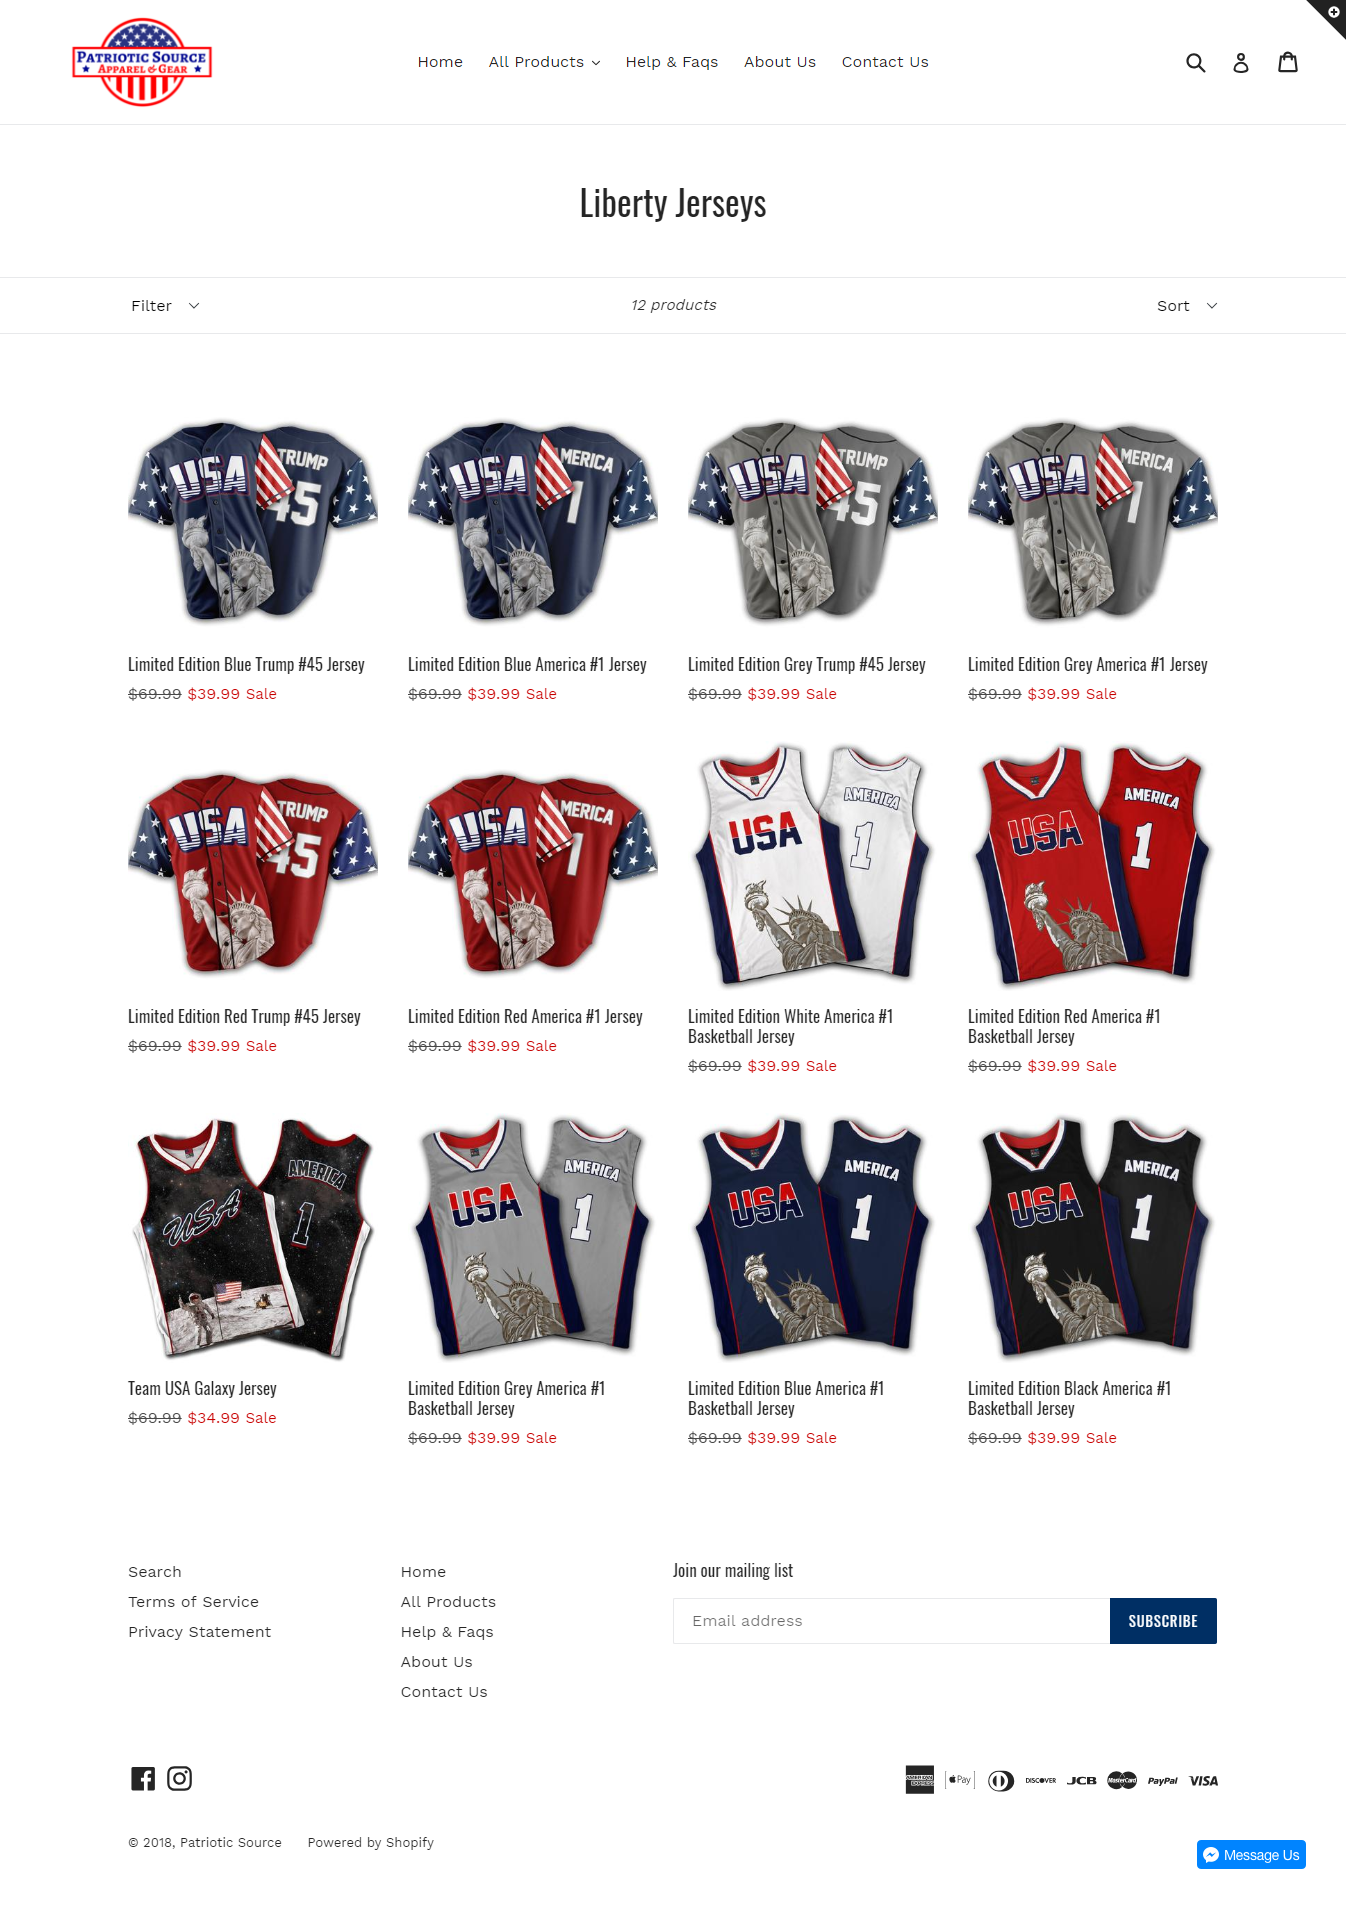 Patriotic Source | Sold Store | Fashion and apparel Business